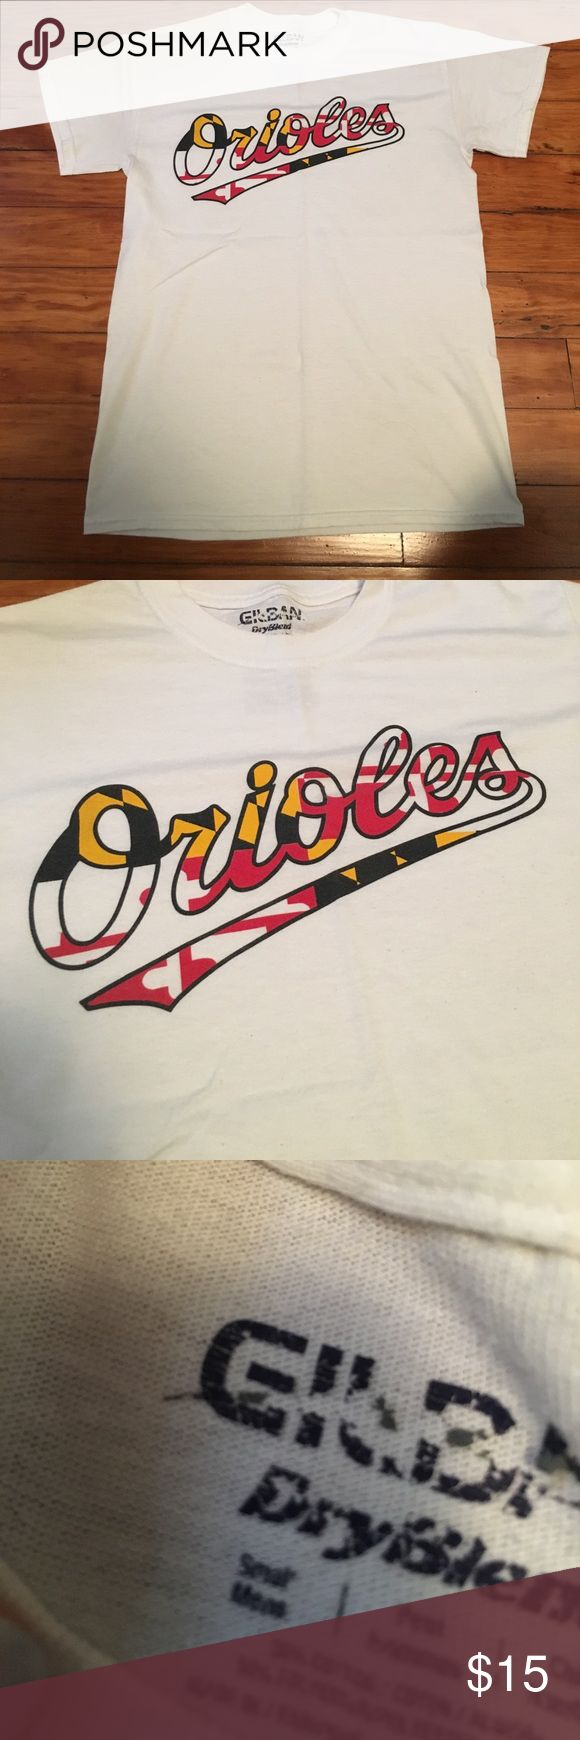 Maryland Orioles Shirt Gently used Maryland flag print O's shirt! Men's size small Tops Tees - Short Sleeve